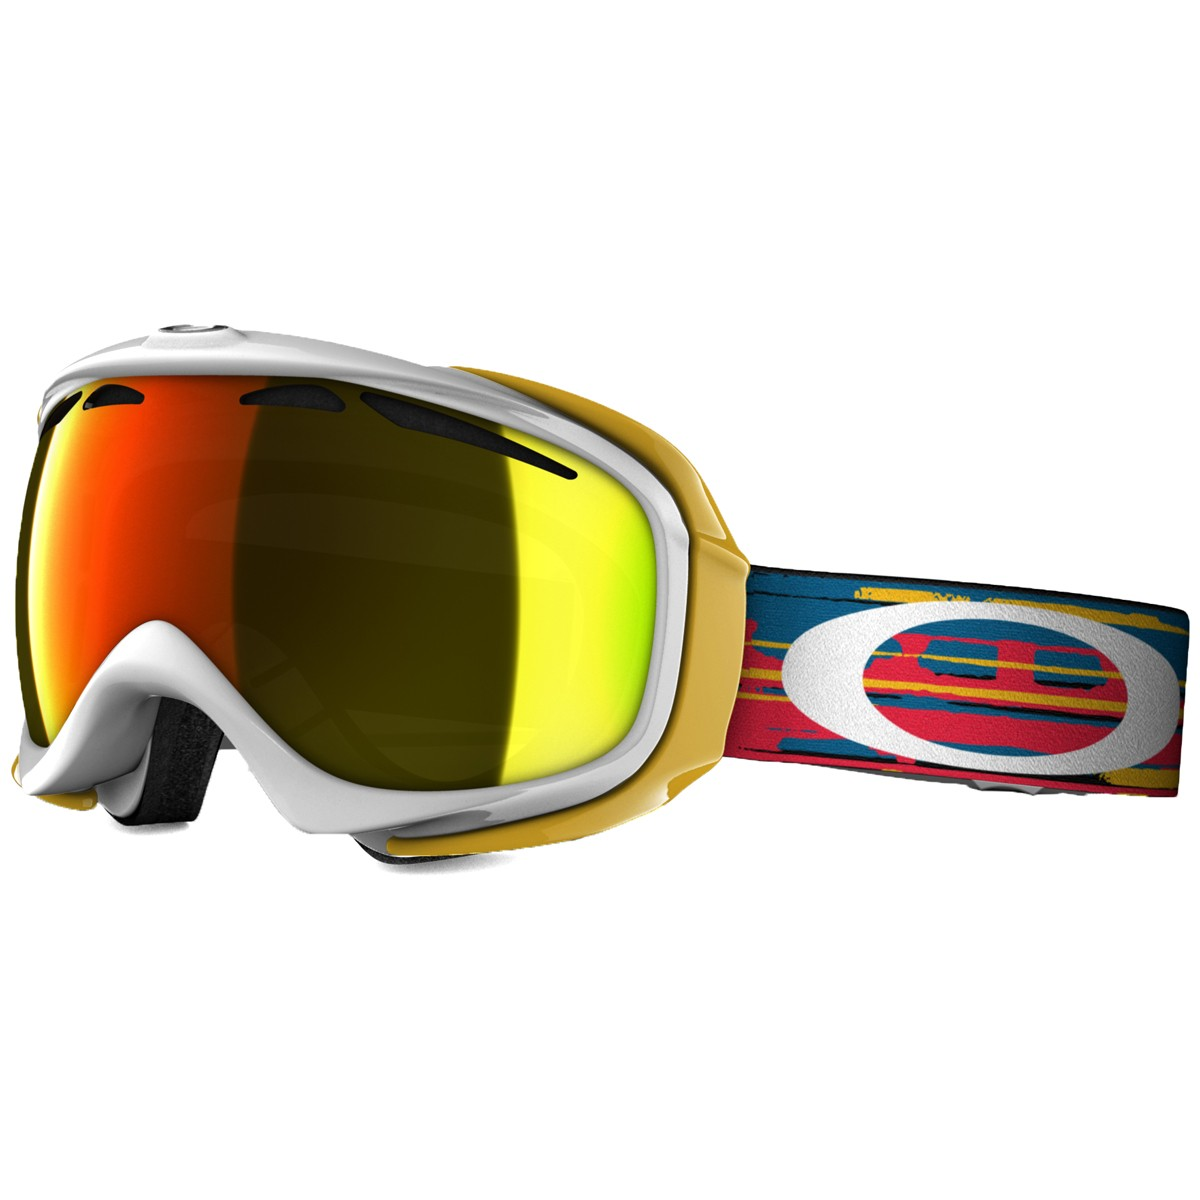 Oakley Elevate Snowboard Goggles 2015 - Ripped n Torn White - Fire Iridium